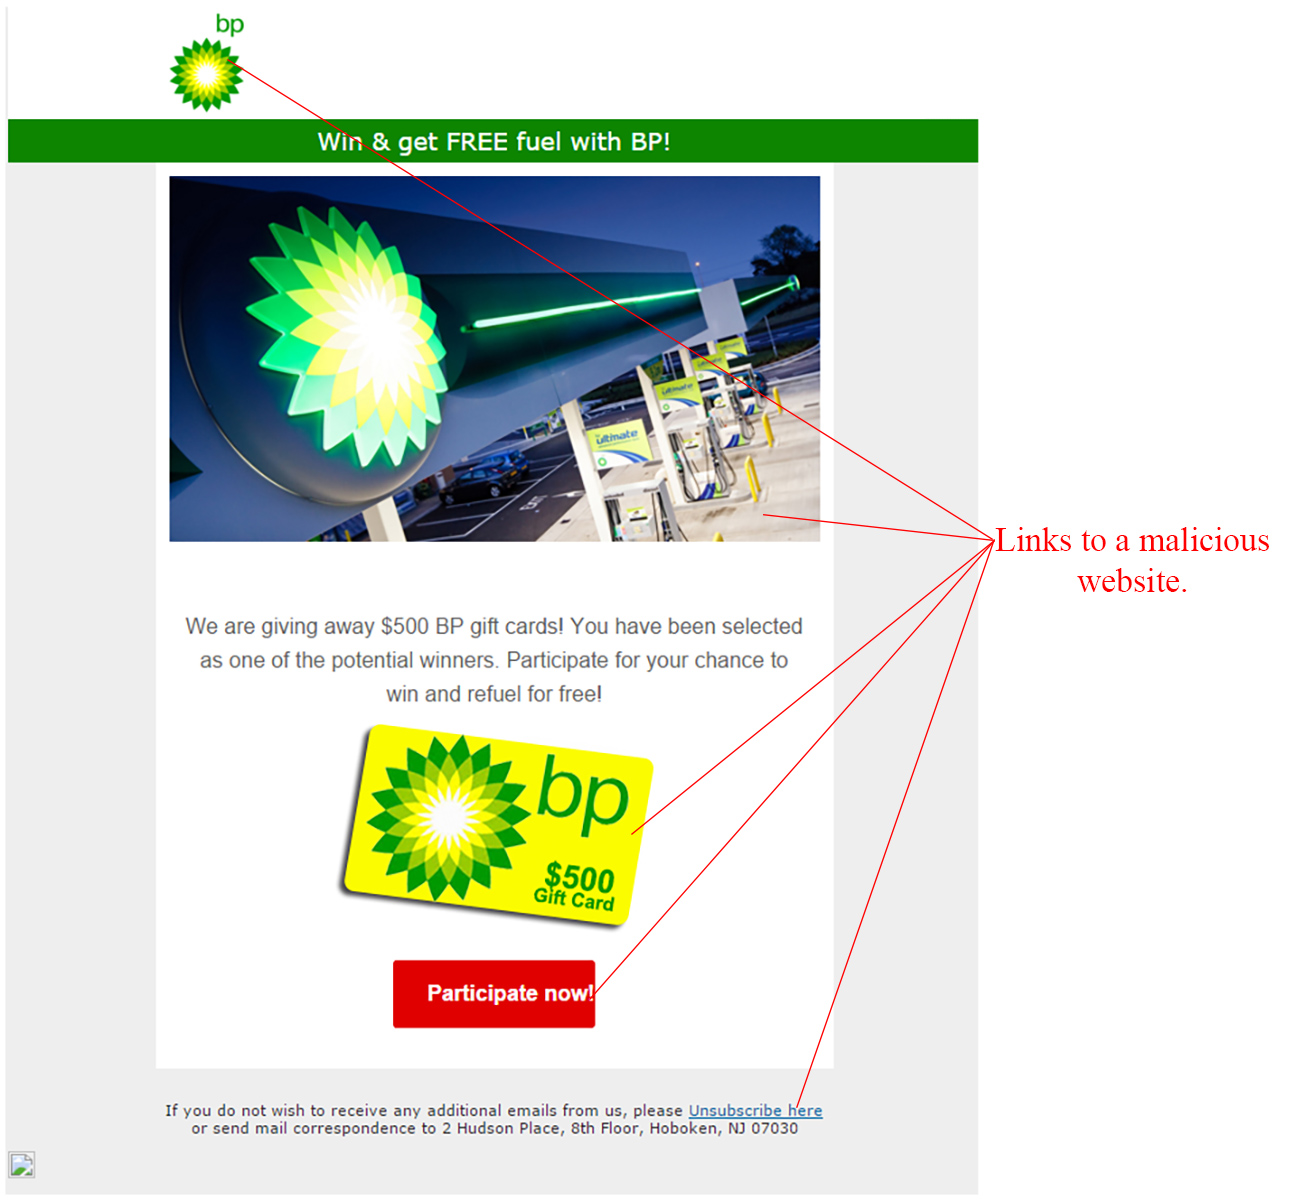 MailShark Win Free Fuel With BP Scam